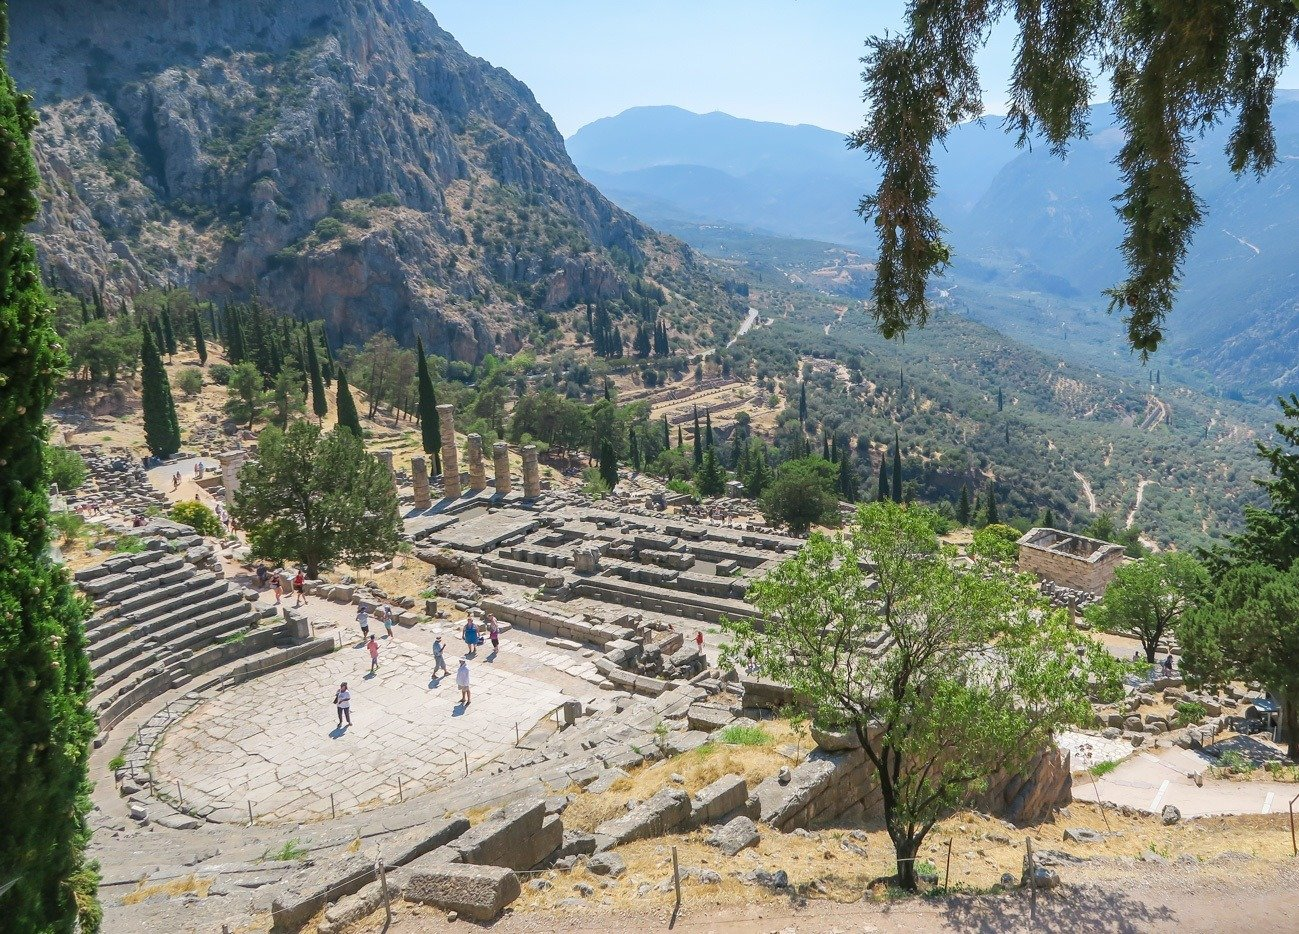 The theatre at Delphi could seat 5000 people for music, poetry events and much more.